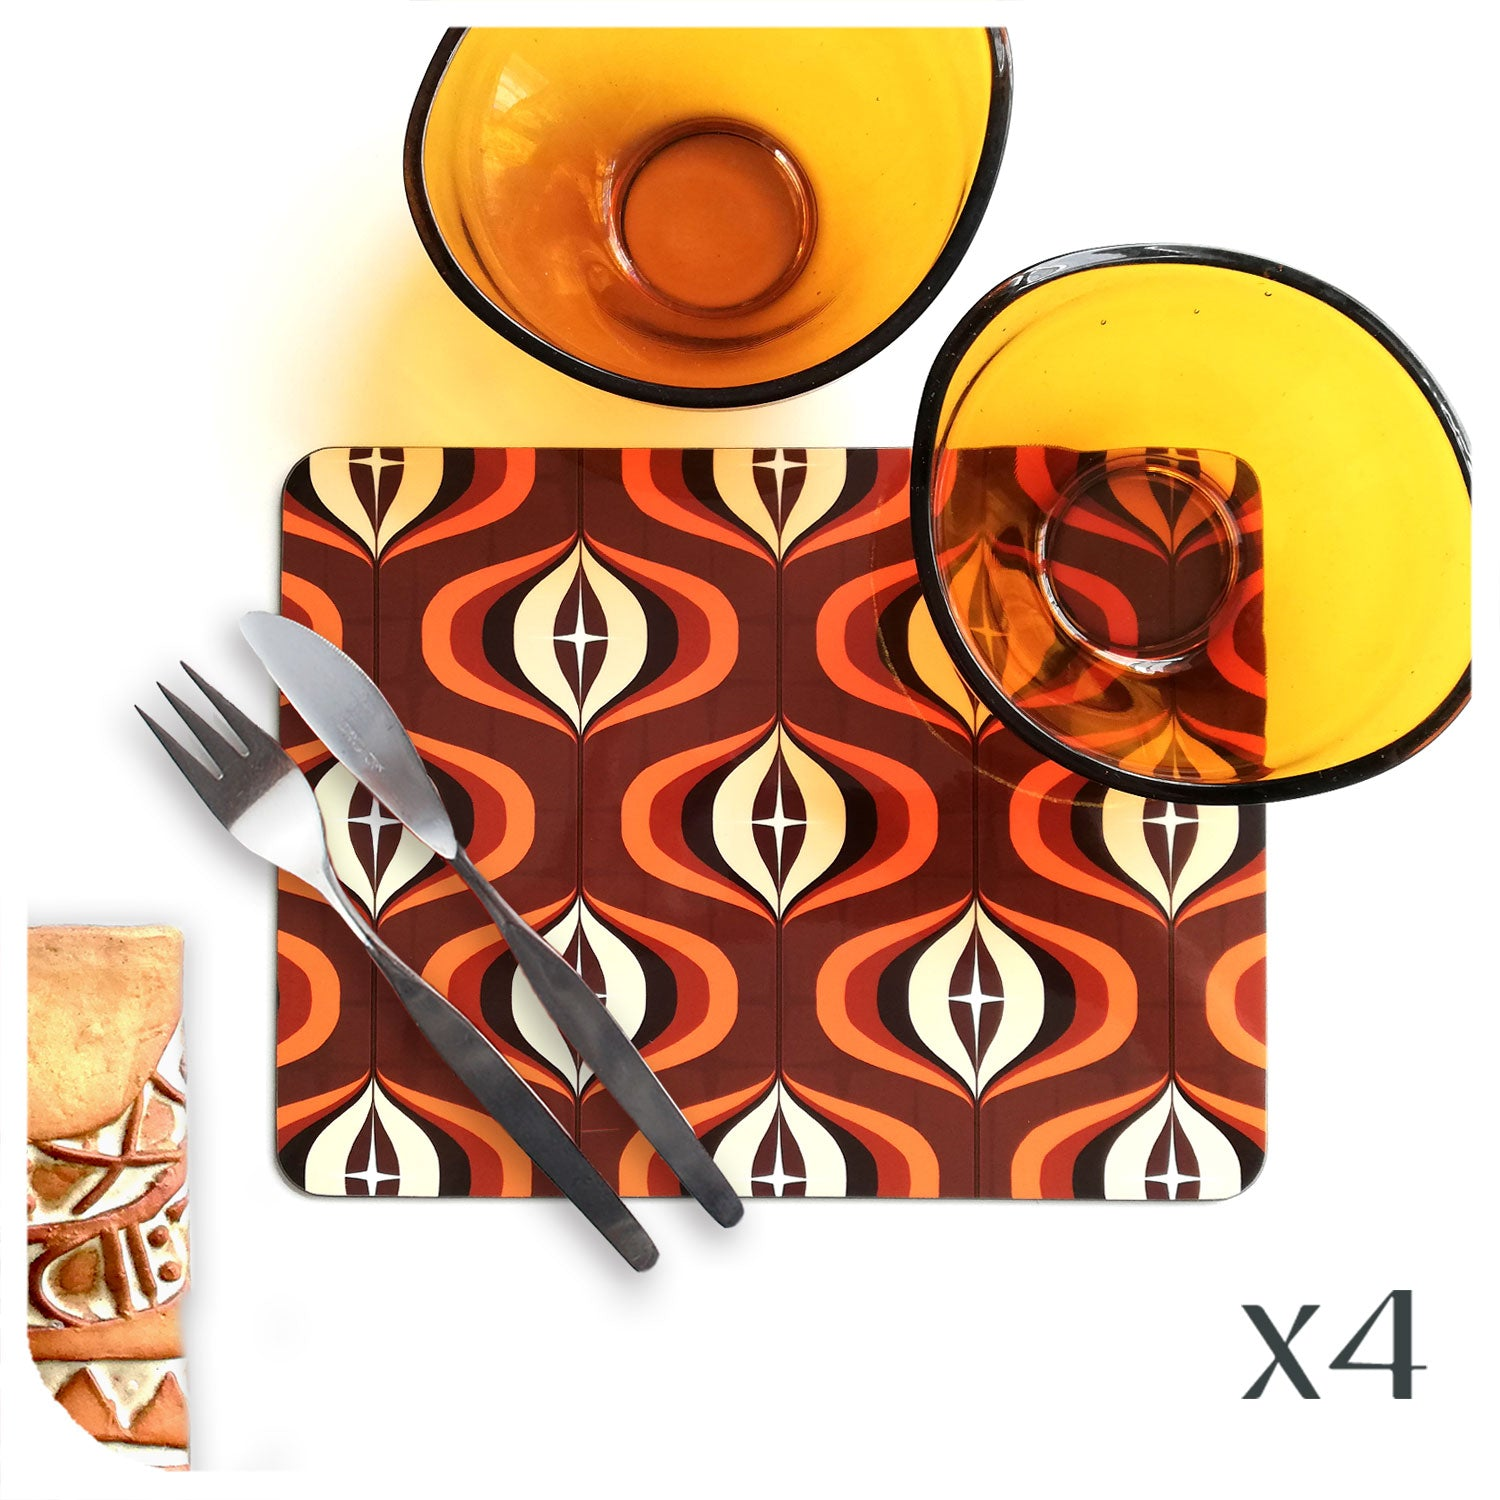 70s Style Op Art Placemat in Orange and Brown, set with vintage tableware | The Inkabilly Emporium